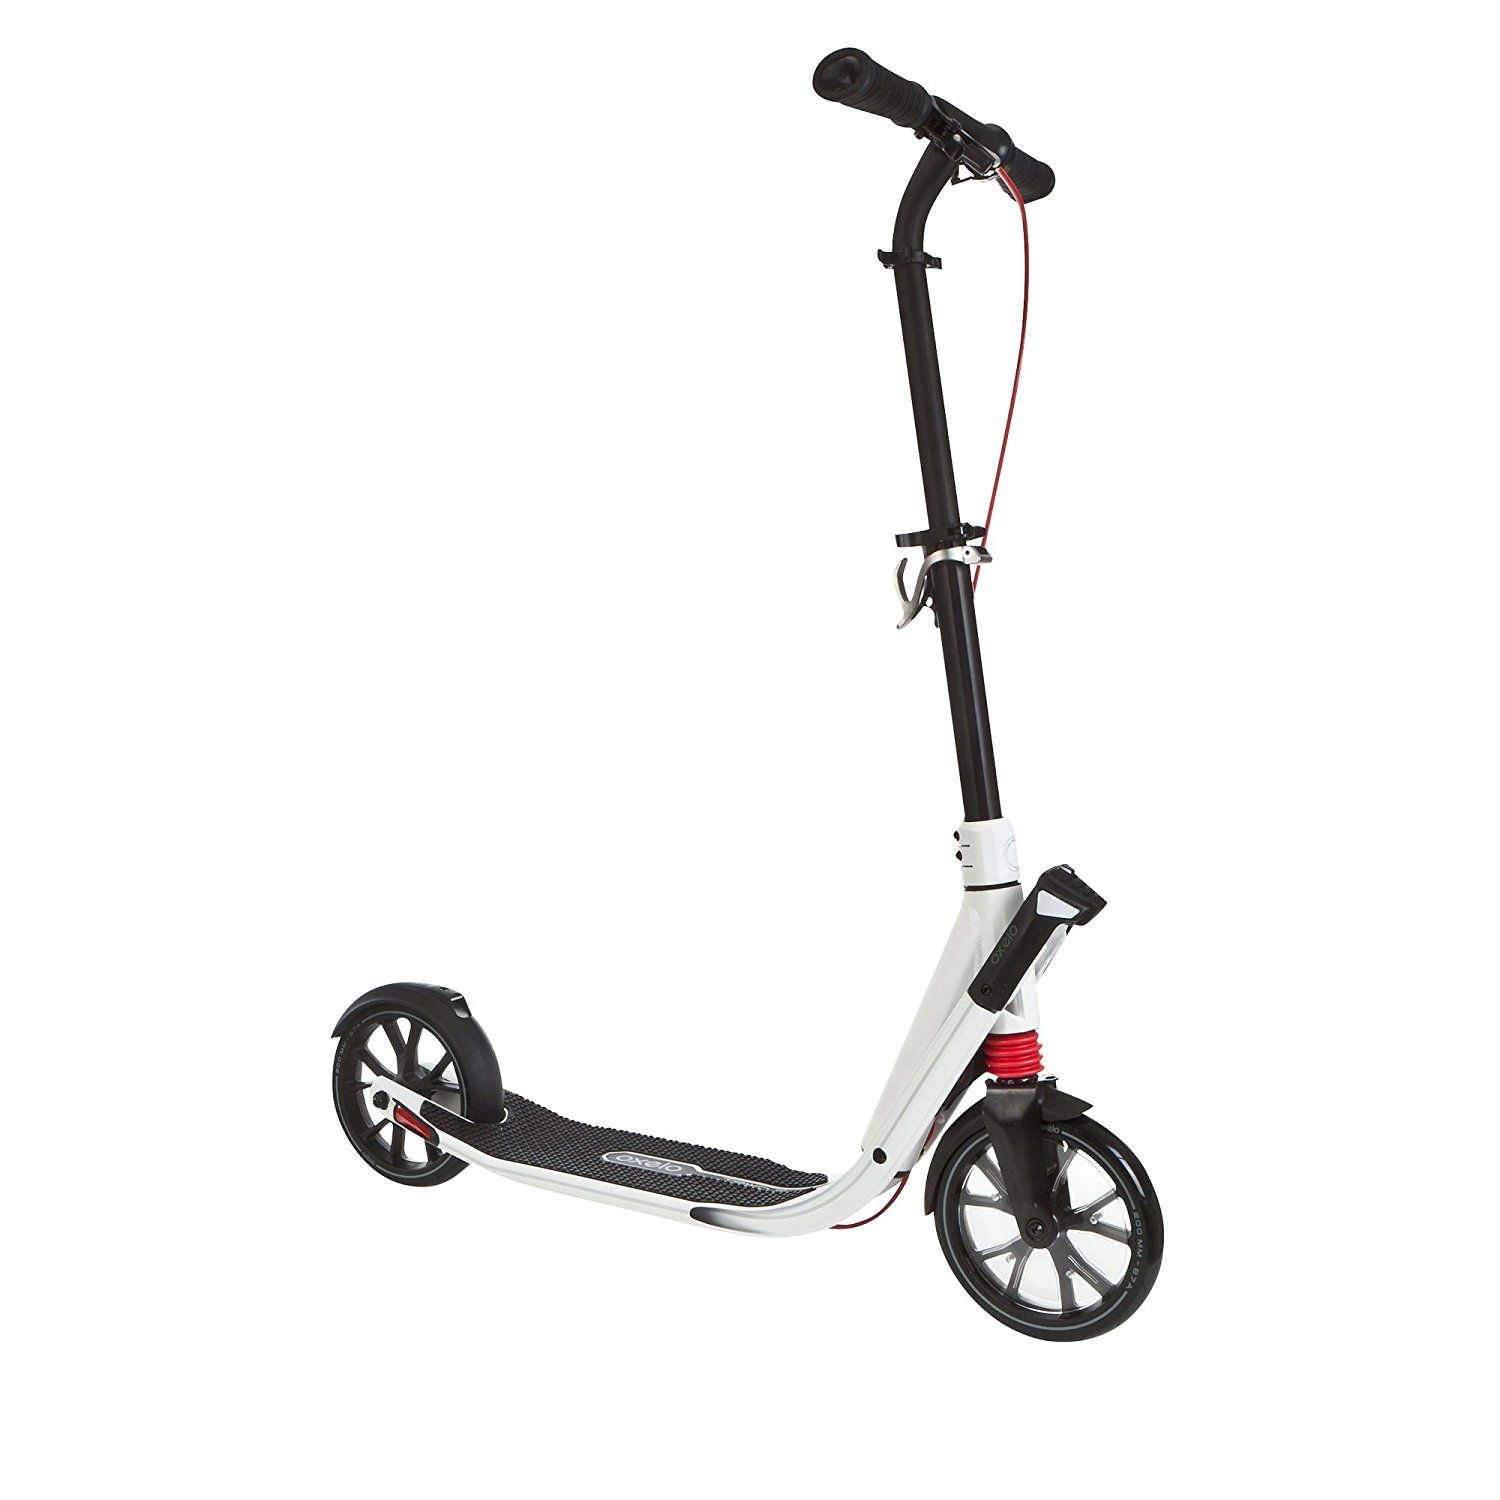 Pin On Best Kick Scooters For Adults